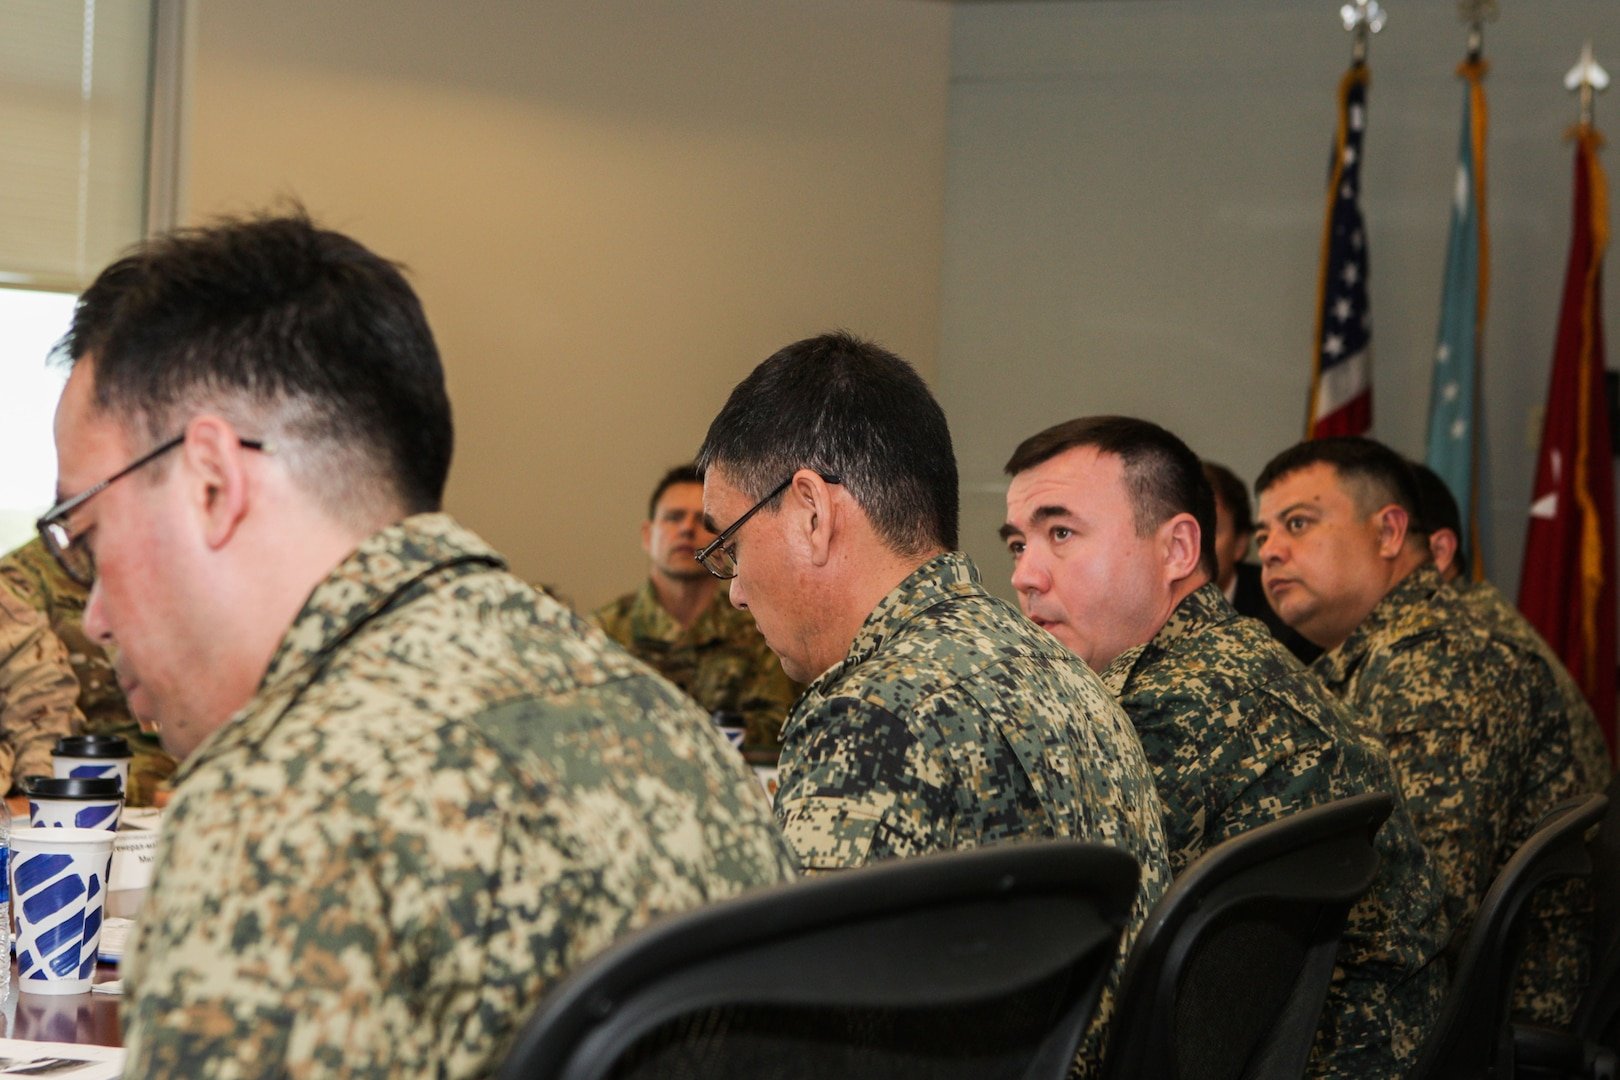 MacDill AFB, Fla. (April 12, 2018) – Members of an Uzbekistan military delegation meet with U.S. military officers at U.S. Central Command headquarters to discuss military-to-military activities. The annual talks are intended to deepen U.S. - Uzbekistan military cooperation, and advance mutual security and defense interests. (Photo by Tom Gagnier)